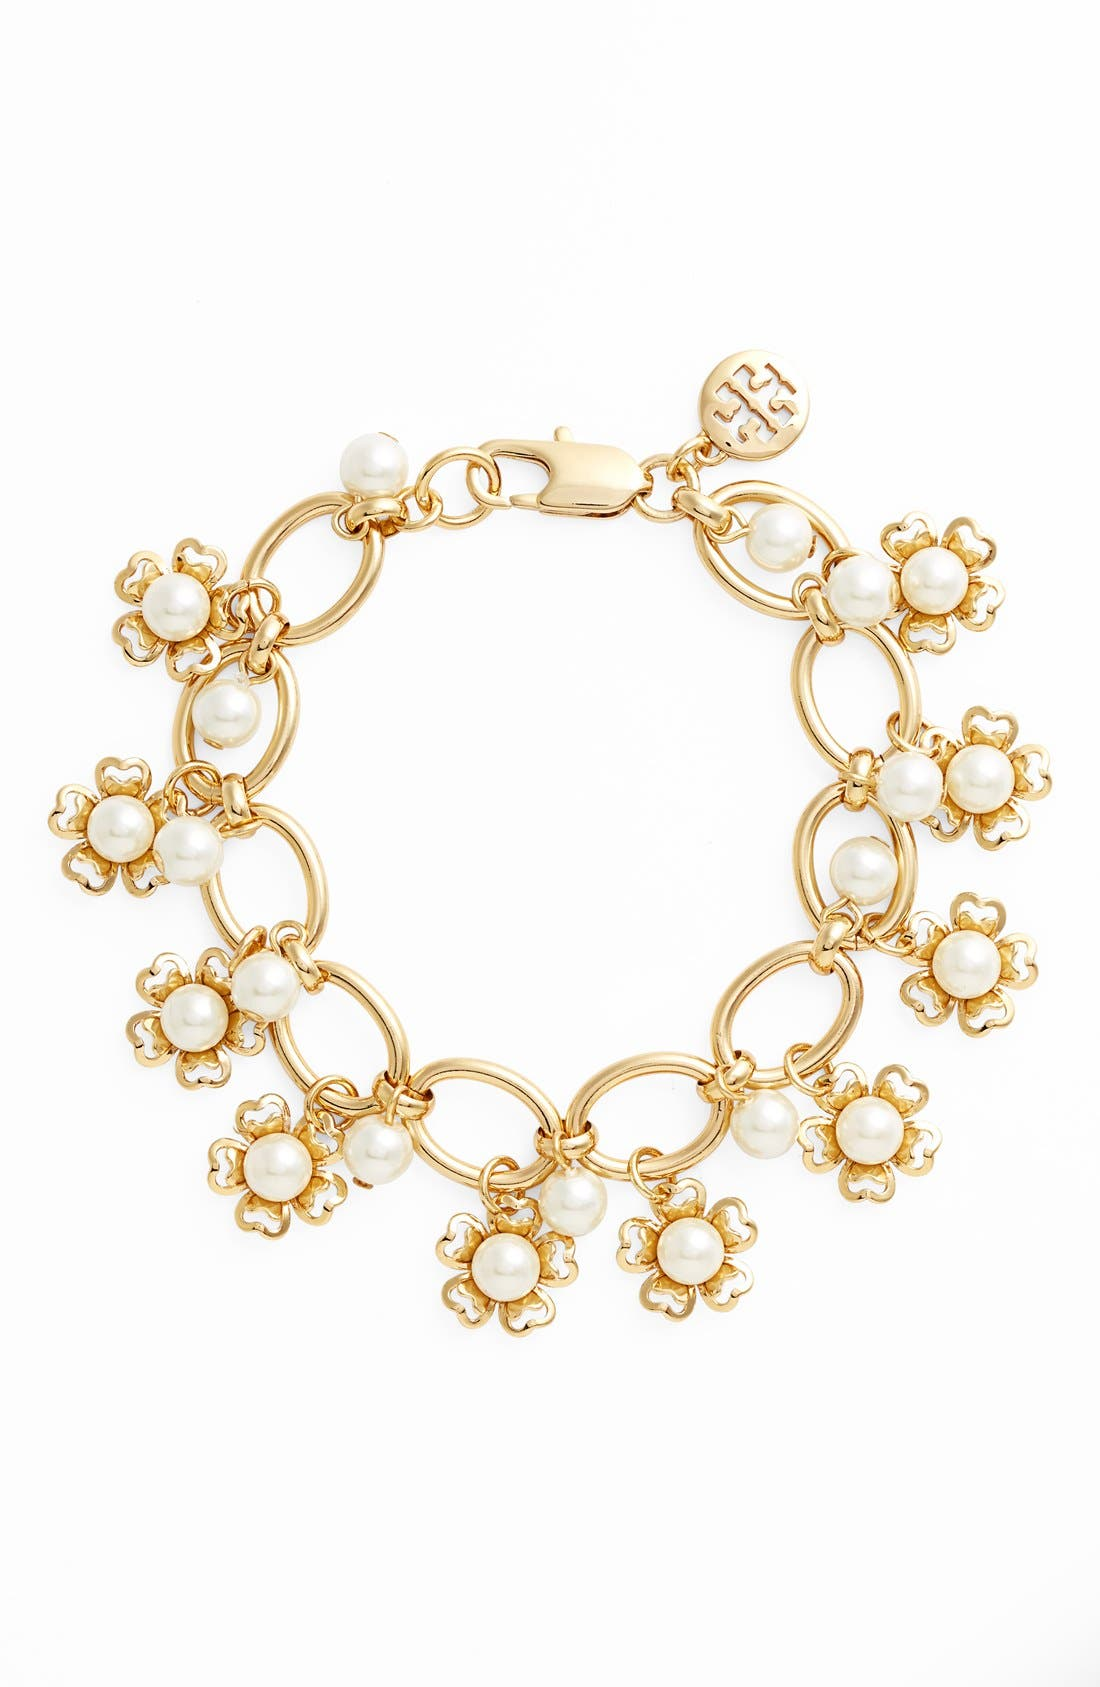 Alternate Image 1 Selected - Tory Burch 'Katie' Glass Pearl Floral Cluster Bracelet